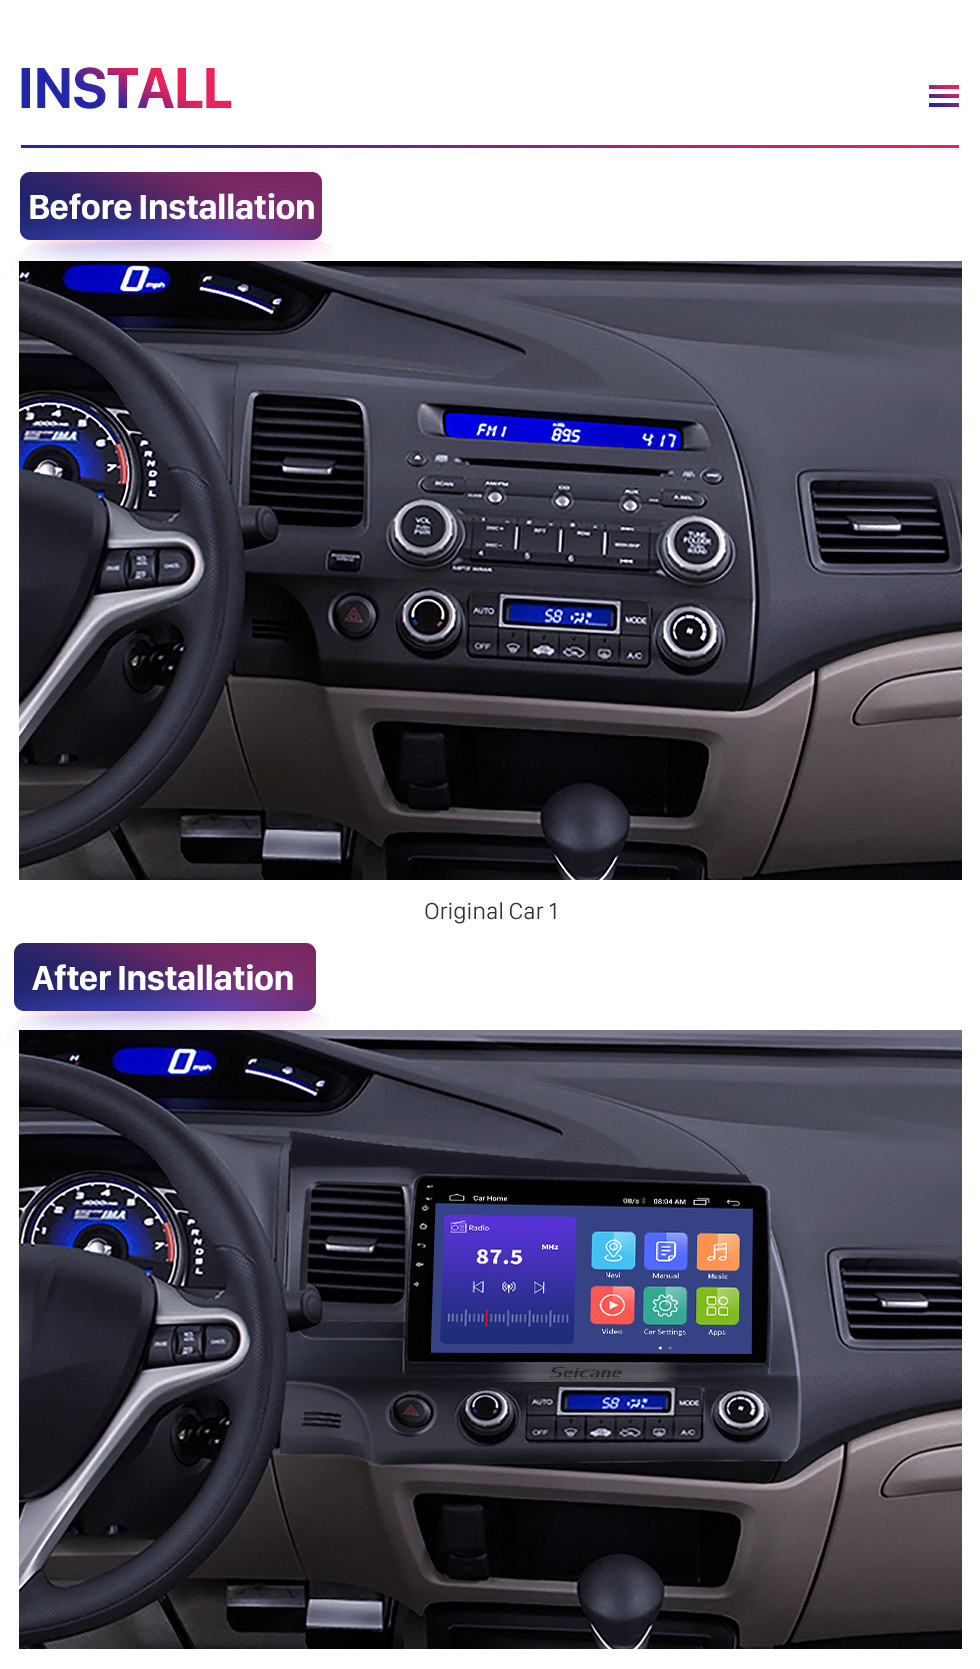 Seicane 10.1 inch 1024*600 HD Touch Screen Android 10.0 GPS Navigation Radio for 2006-2011 Honda Civic(LHD) with Bluetooth WIFI OBD2 USB Audio Aux 1080P Rearview Camera